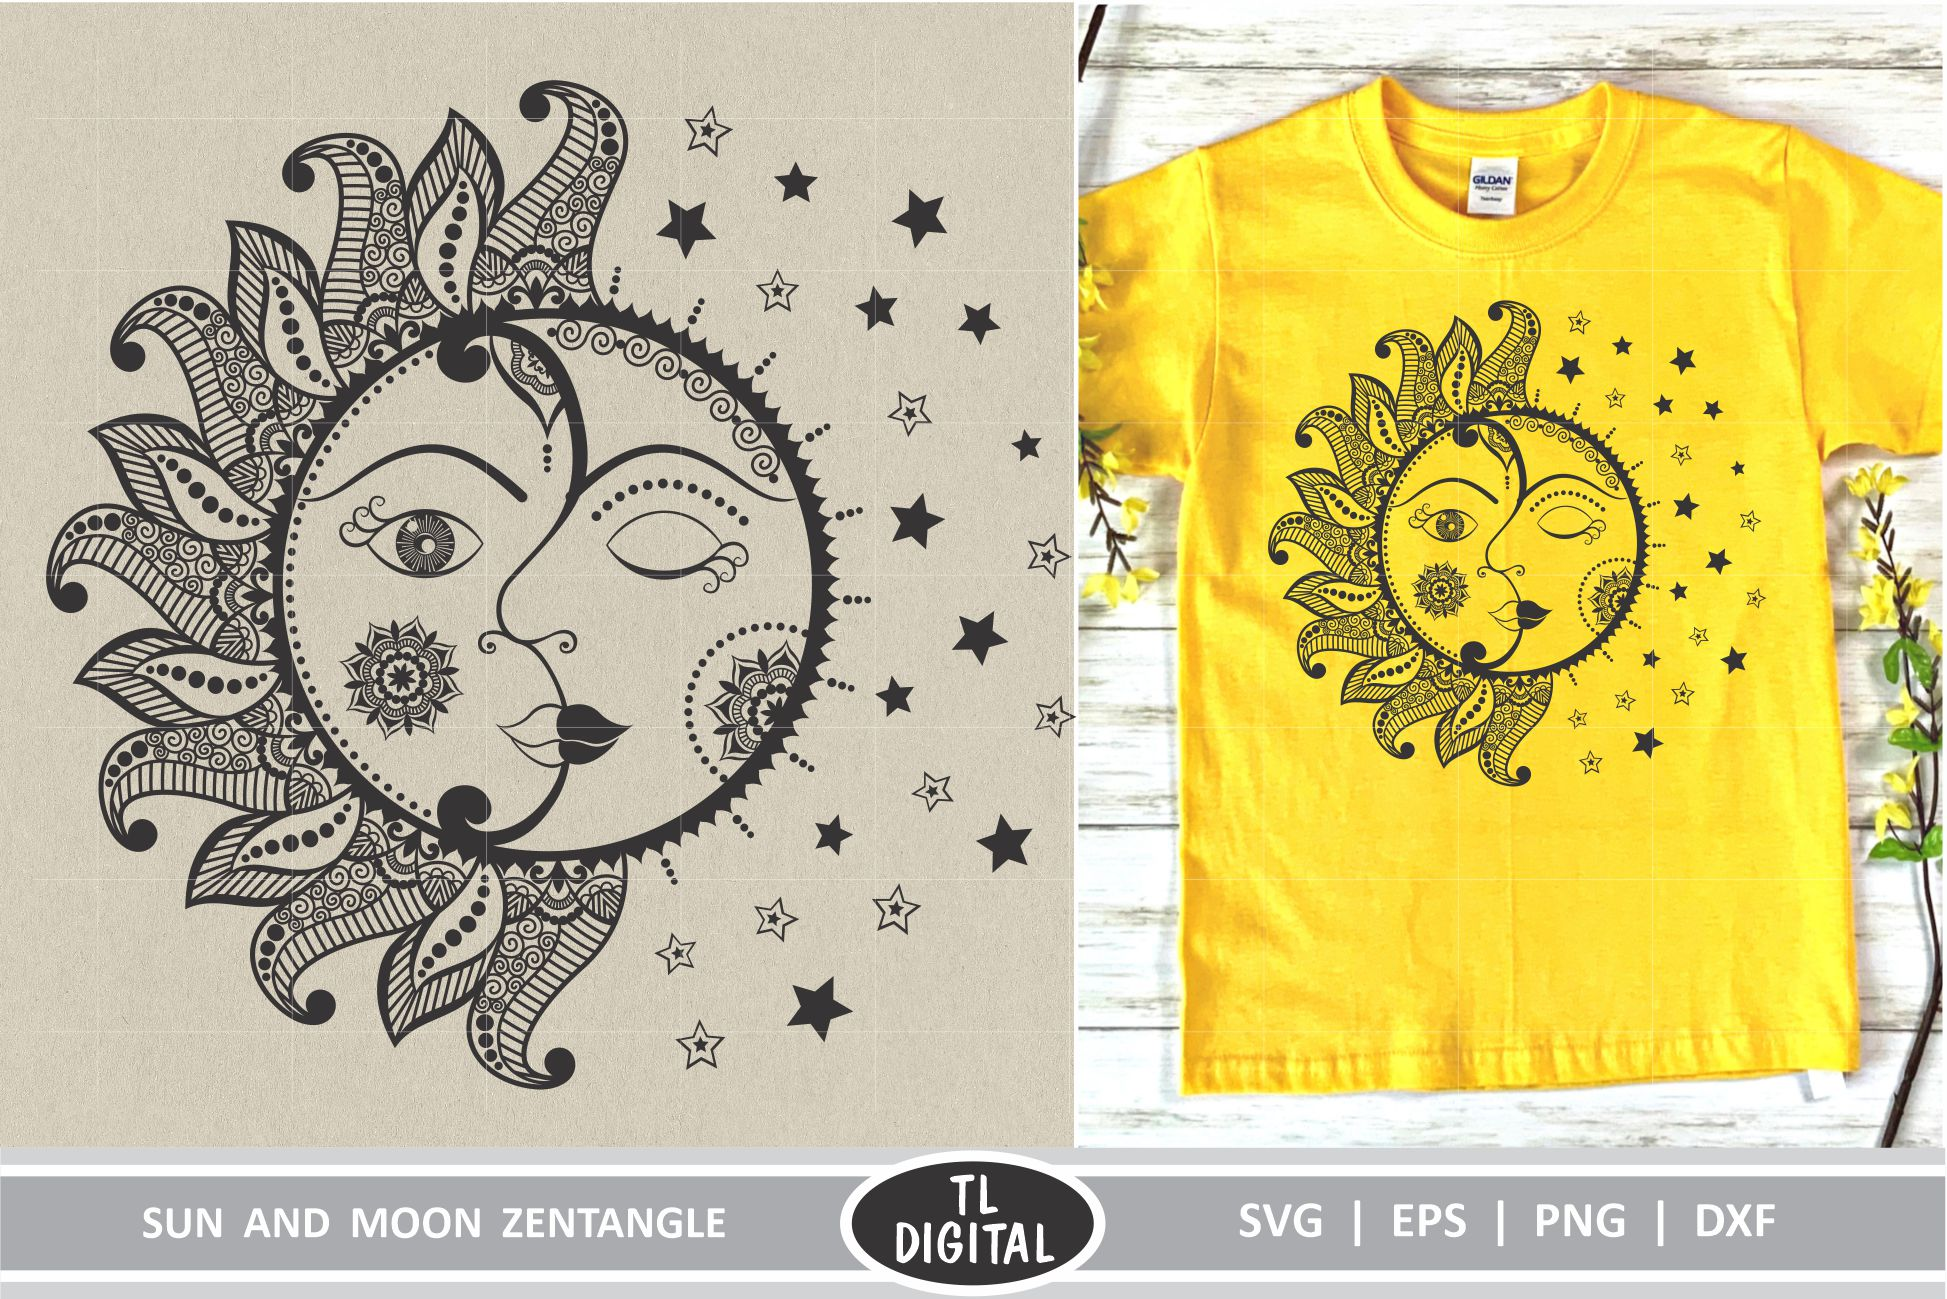 Sun and Moon Zentangle - Mandala SVG | EPS | PNG | DXF example image 1